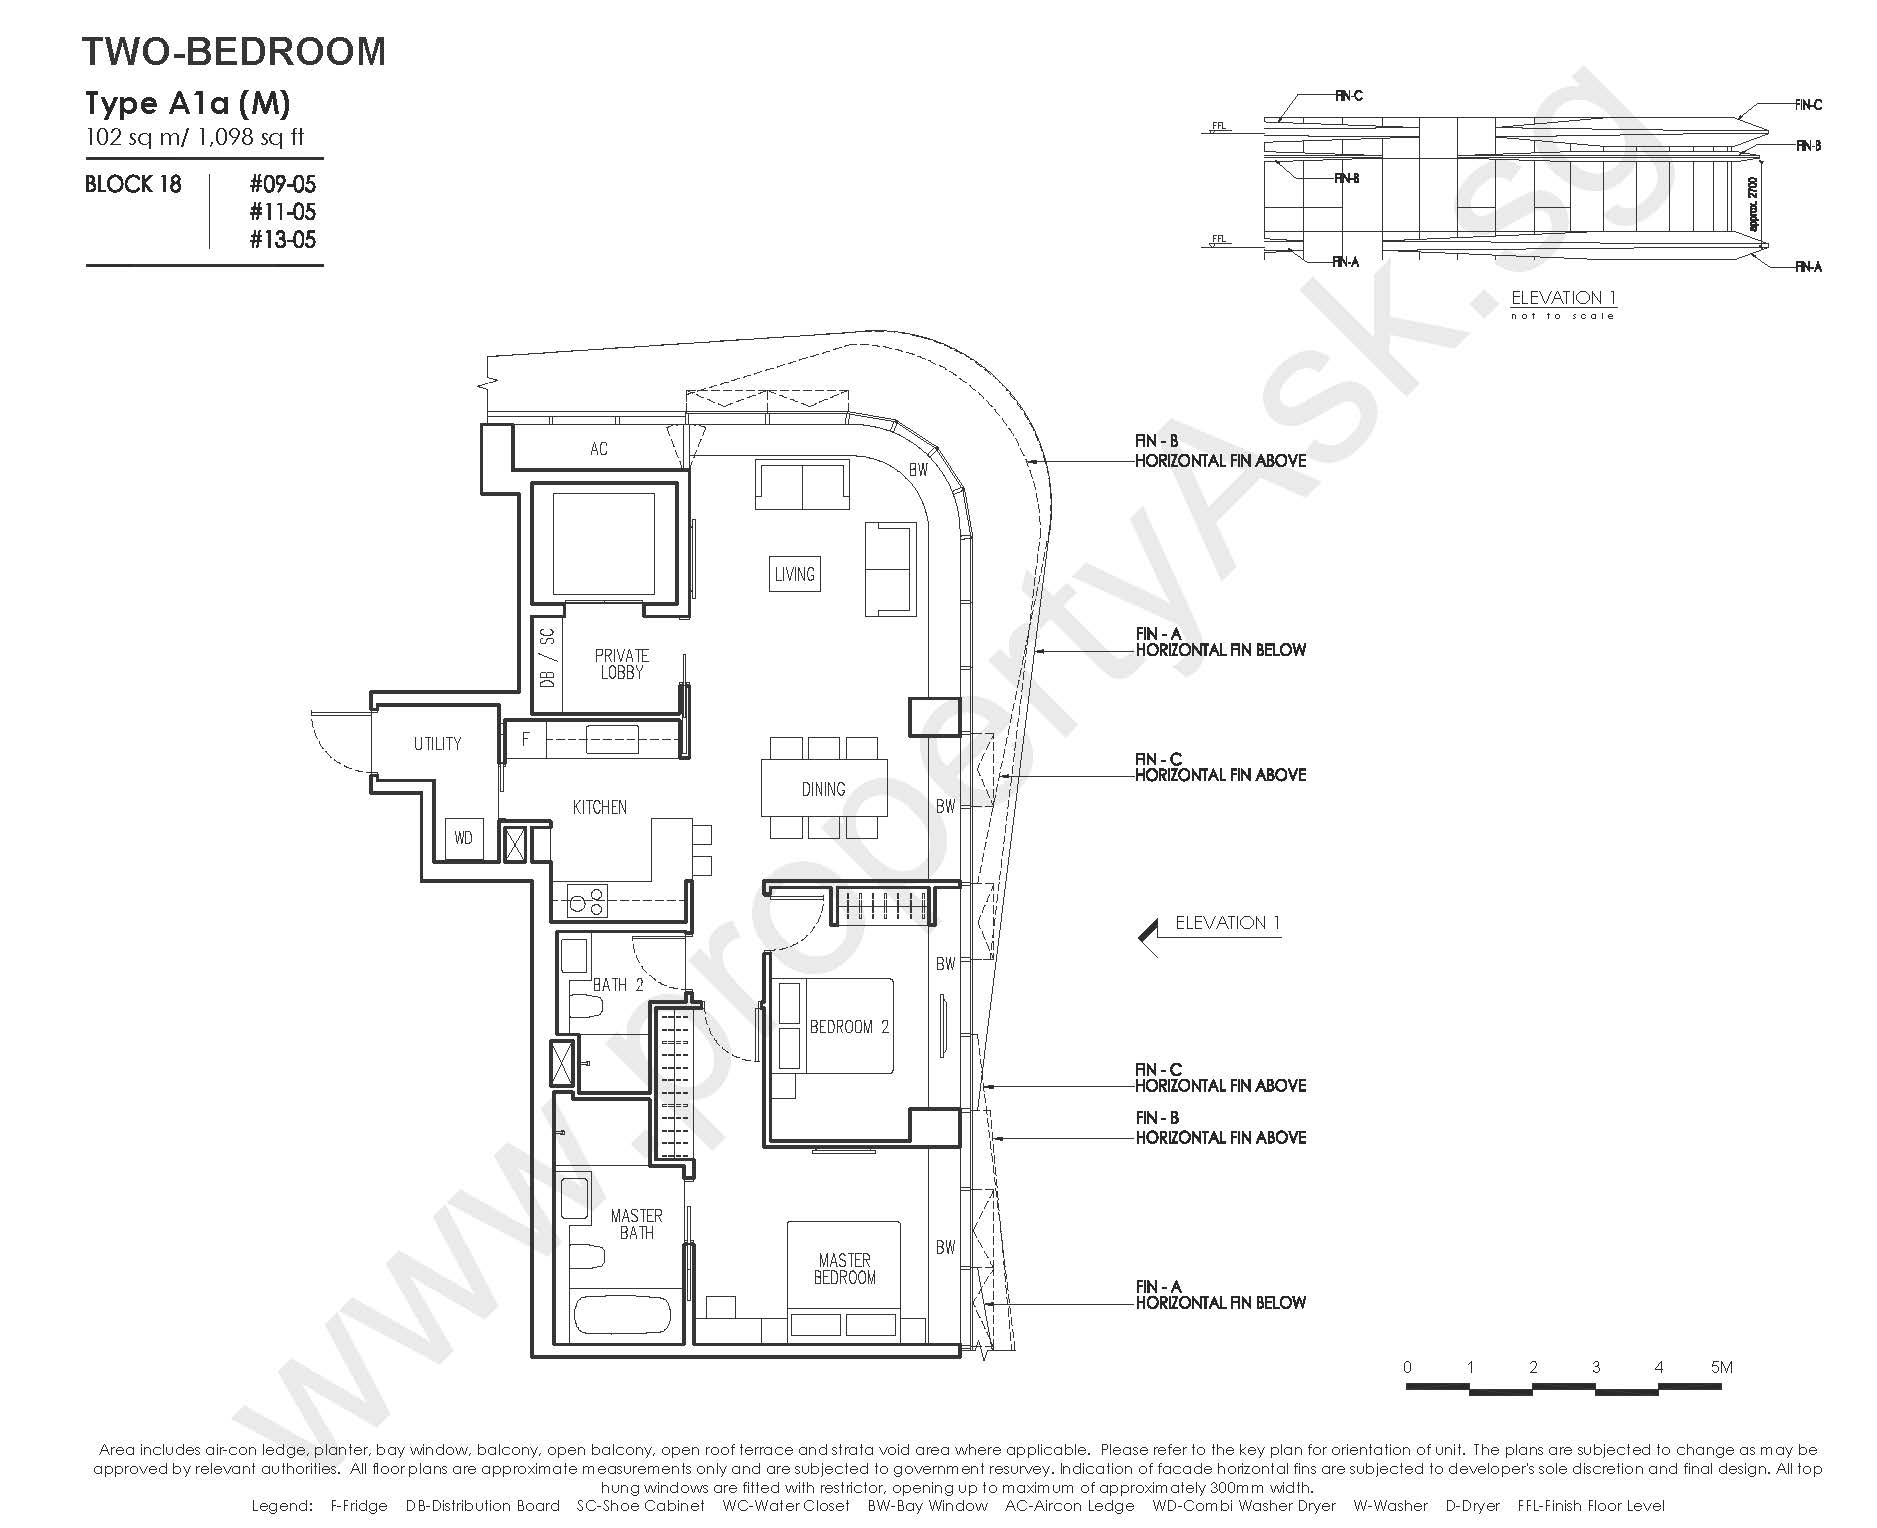 2 Bedroom Type A1a